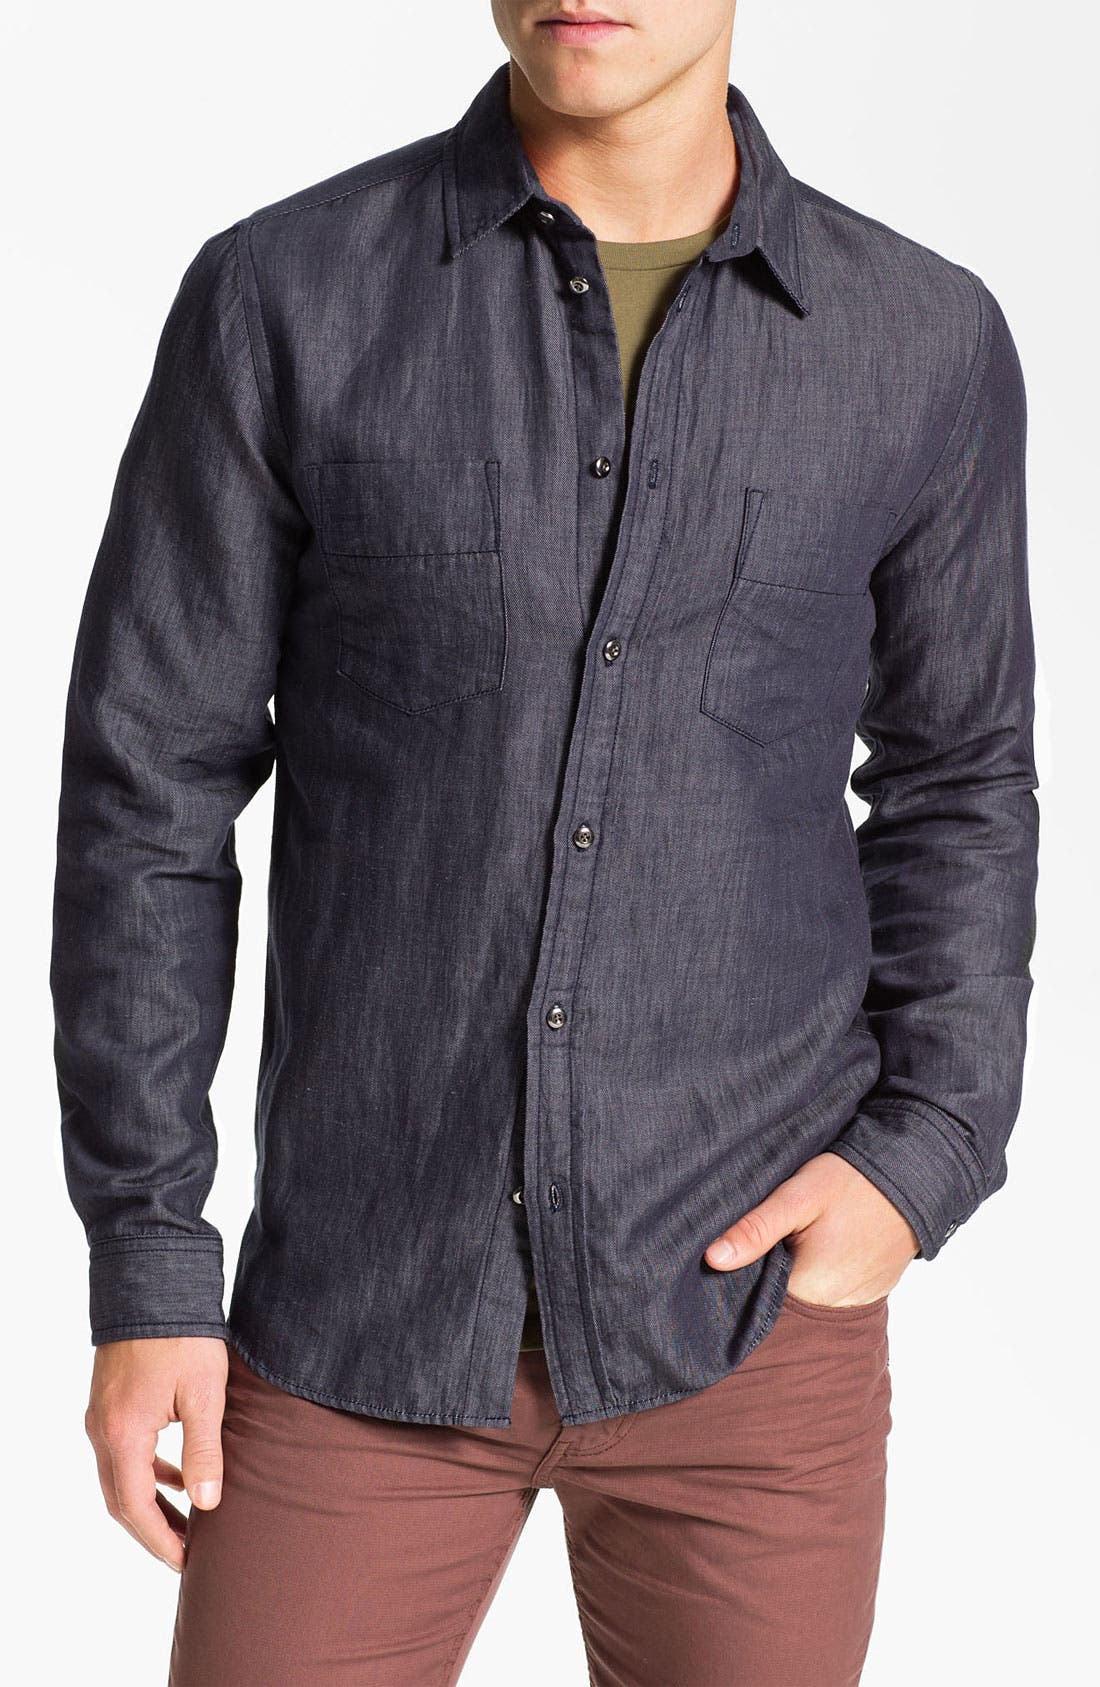 Alternate Image 1 Selected - MARC BY MARC JACOBS 'Leo' Trim Fit Chambray Shirt